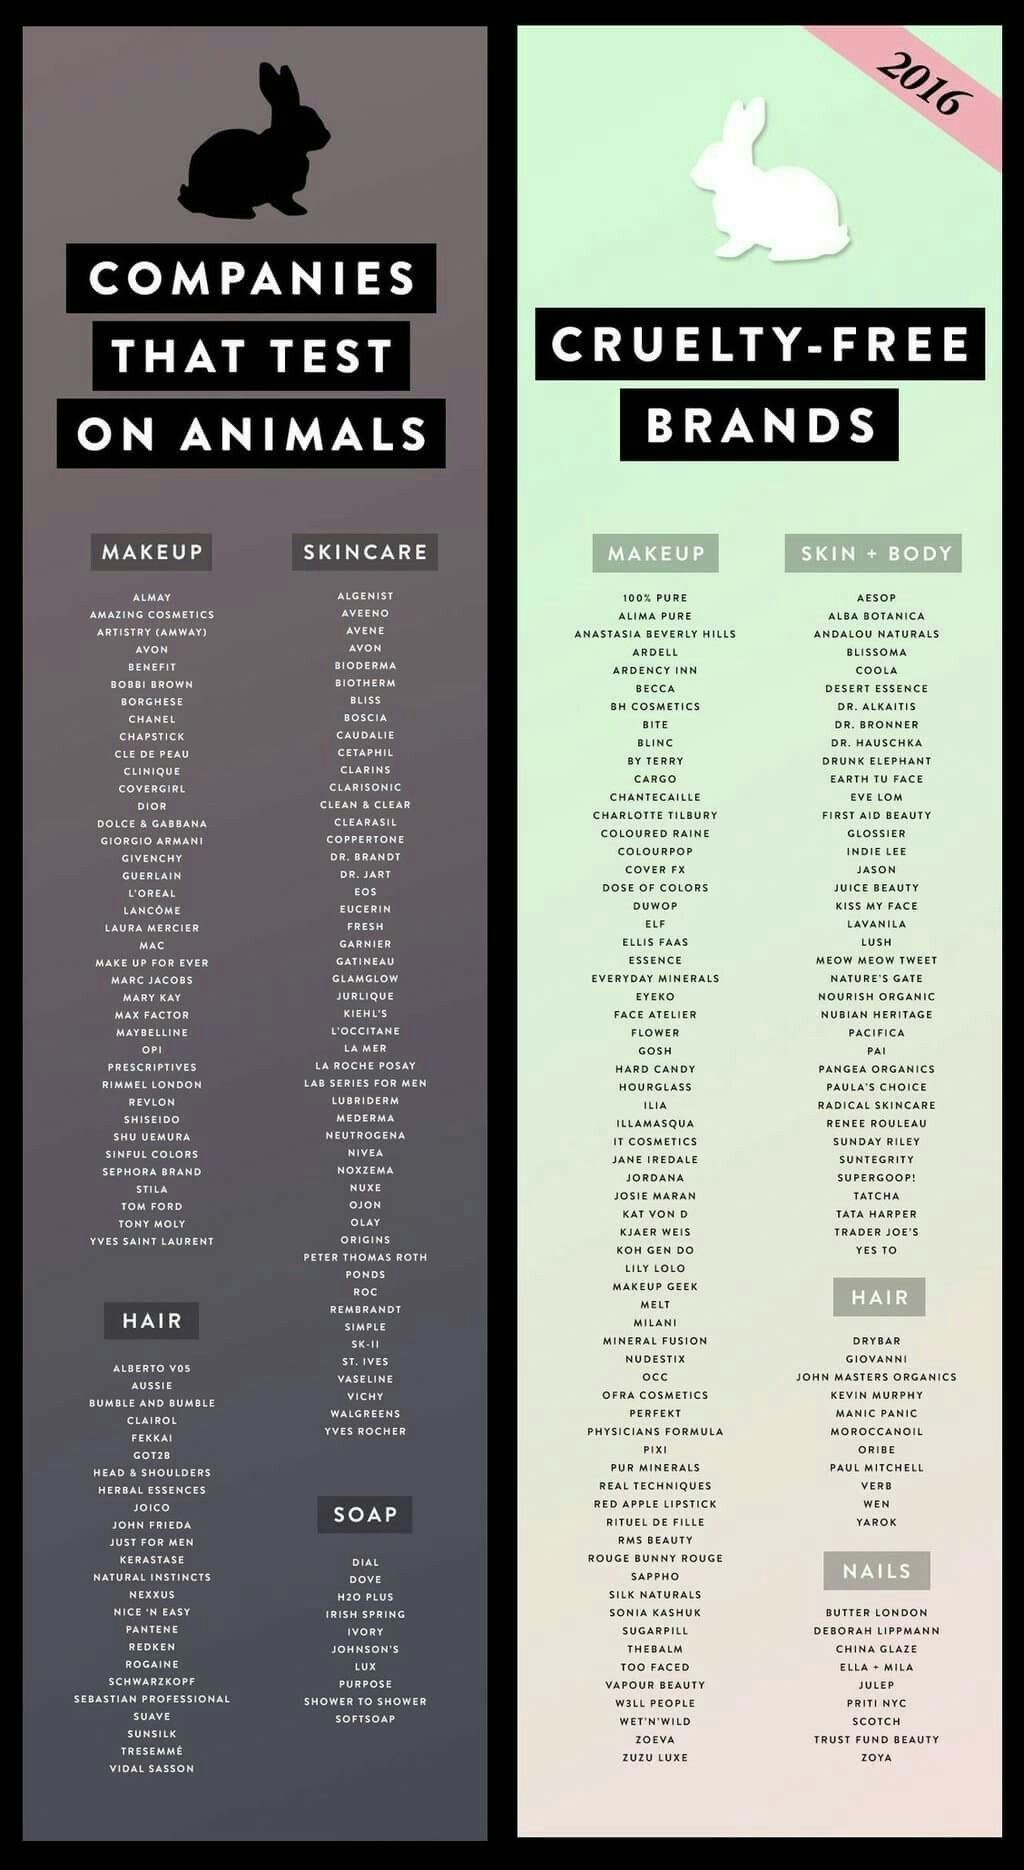 Pin by Barb84 on Makeup Cruelty free brands, Cruelty